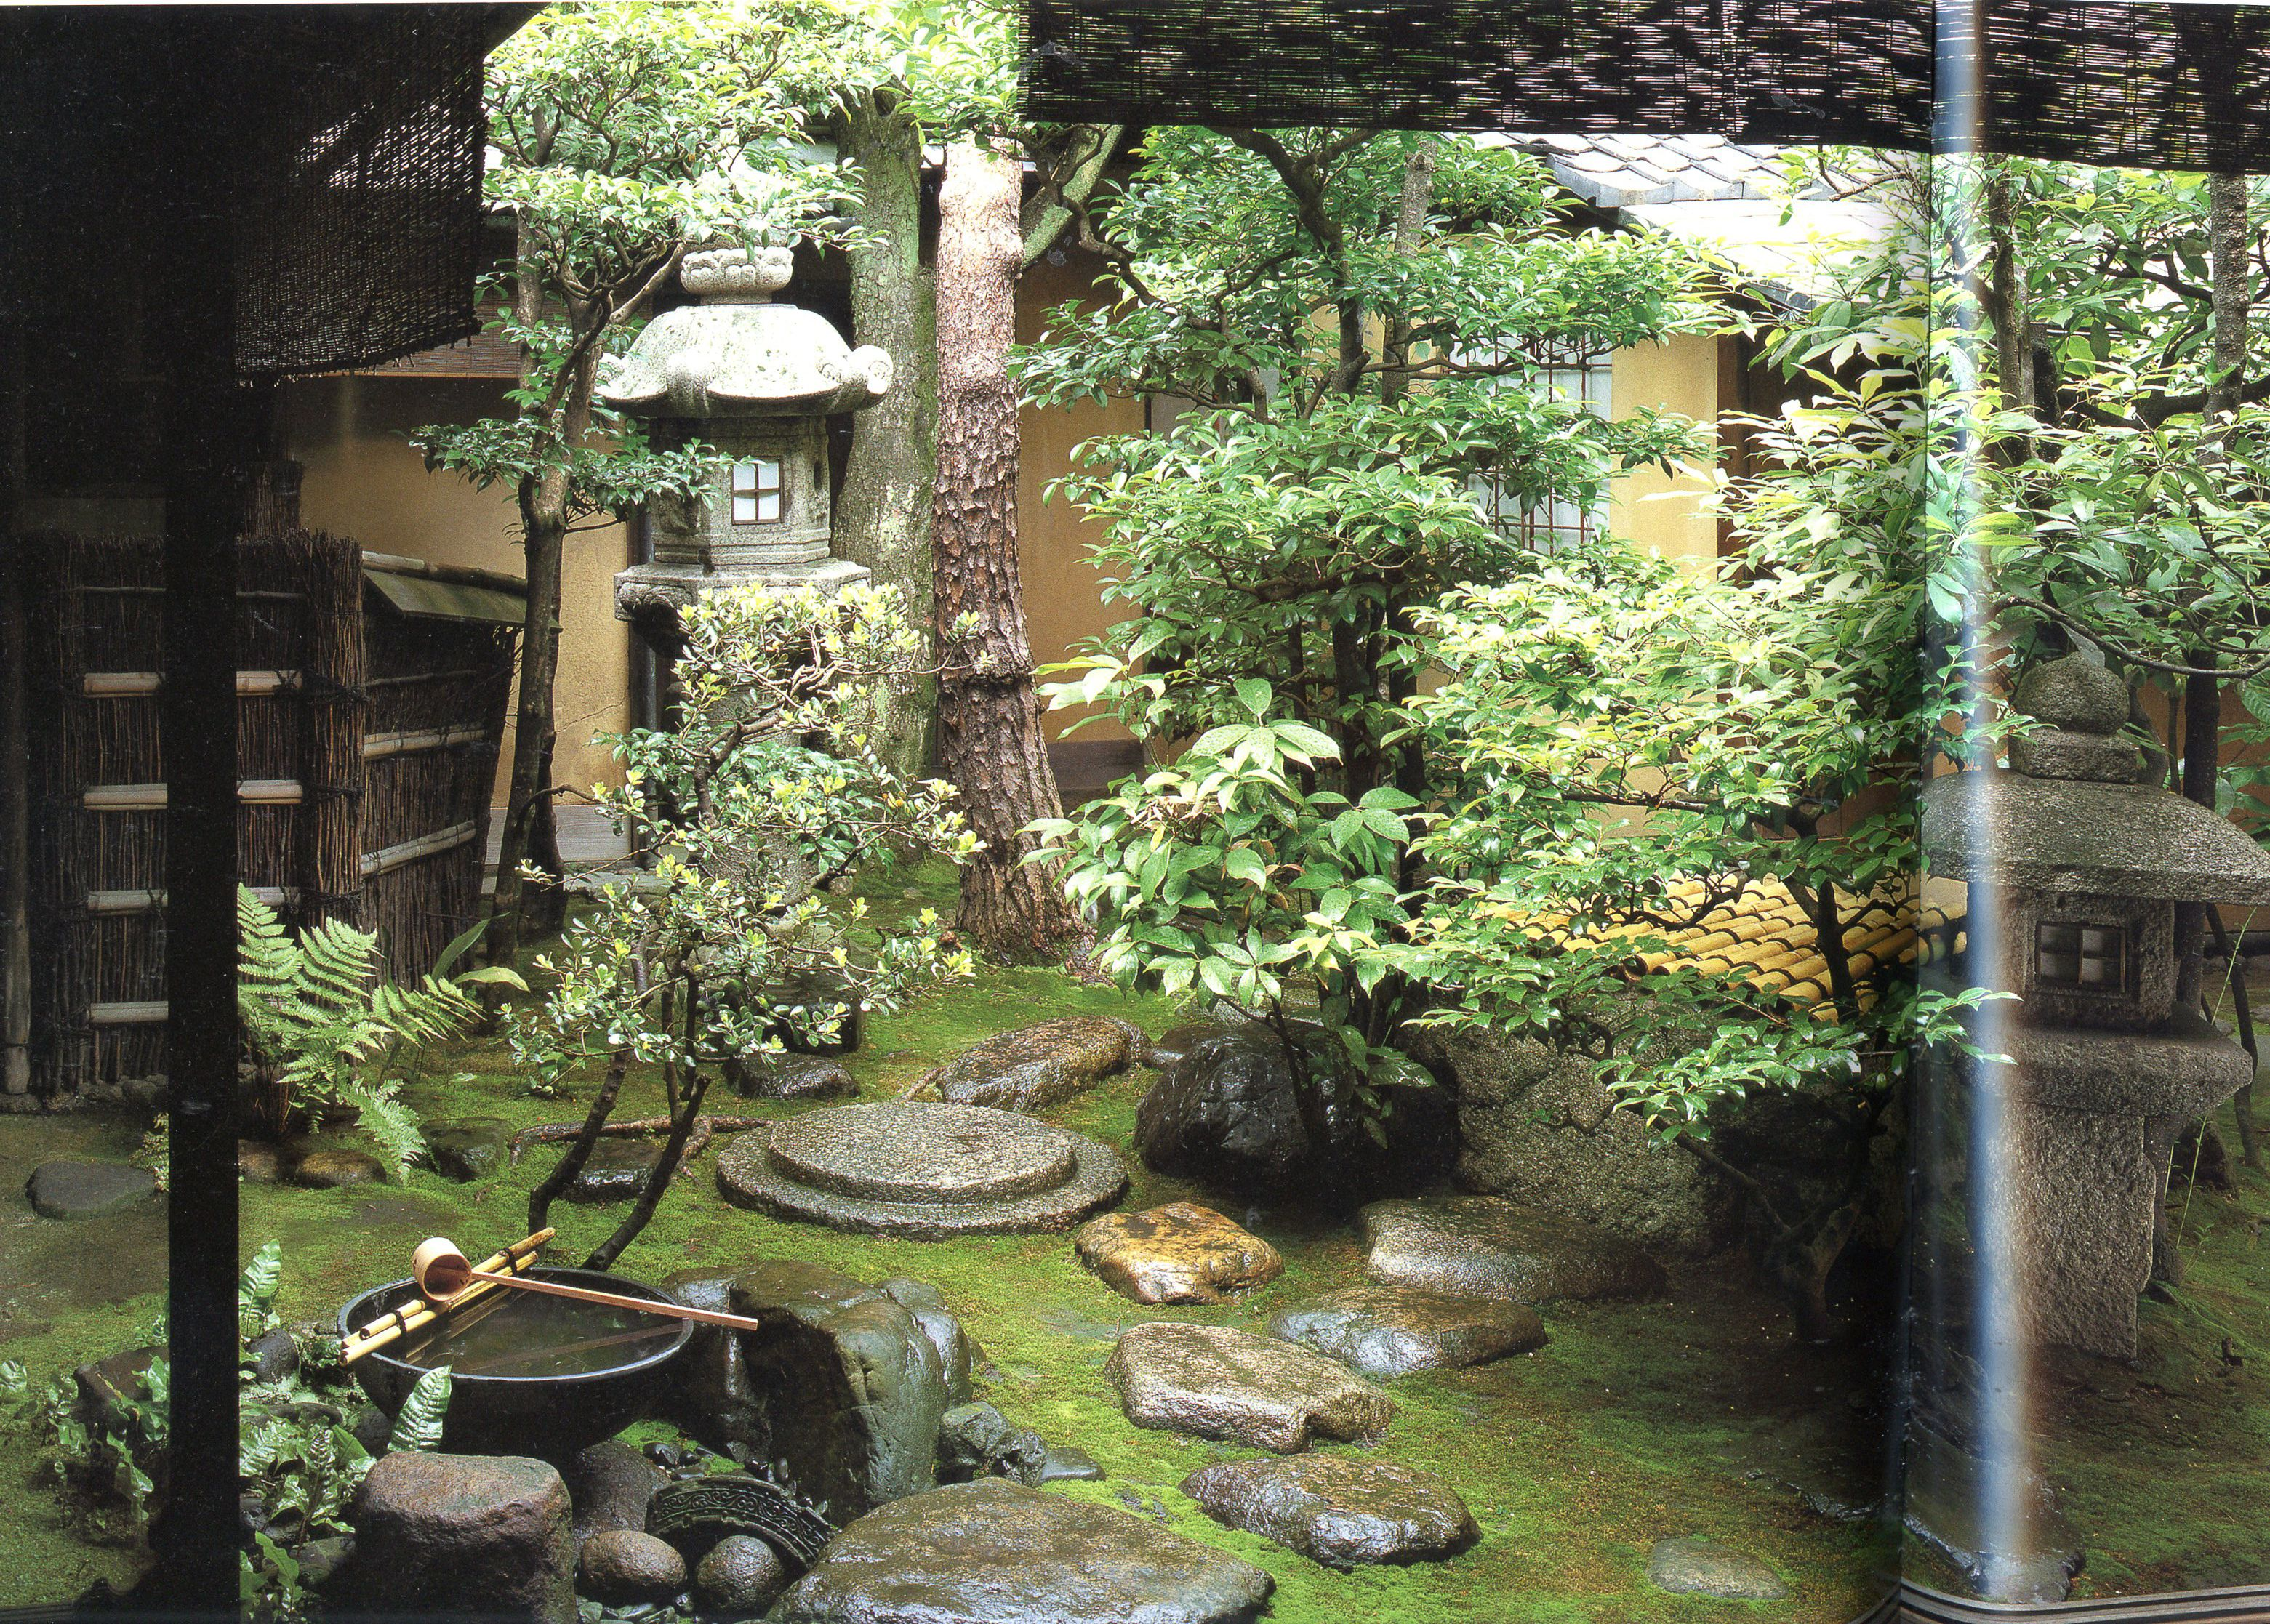 eb09046477cea89b50d3afe9408218cf - Landscapes For Small Spaces Japanese Courtyard Gardens